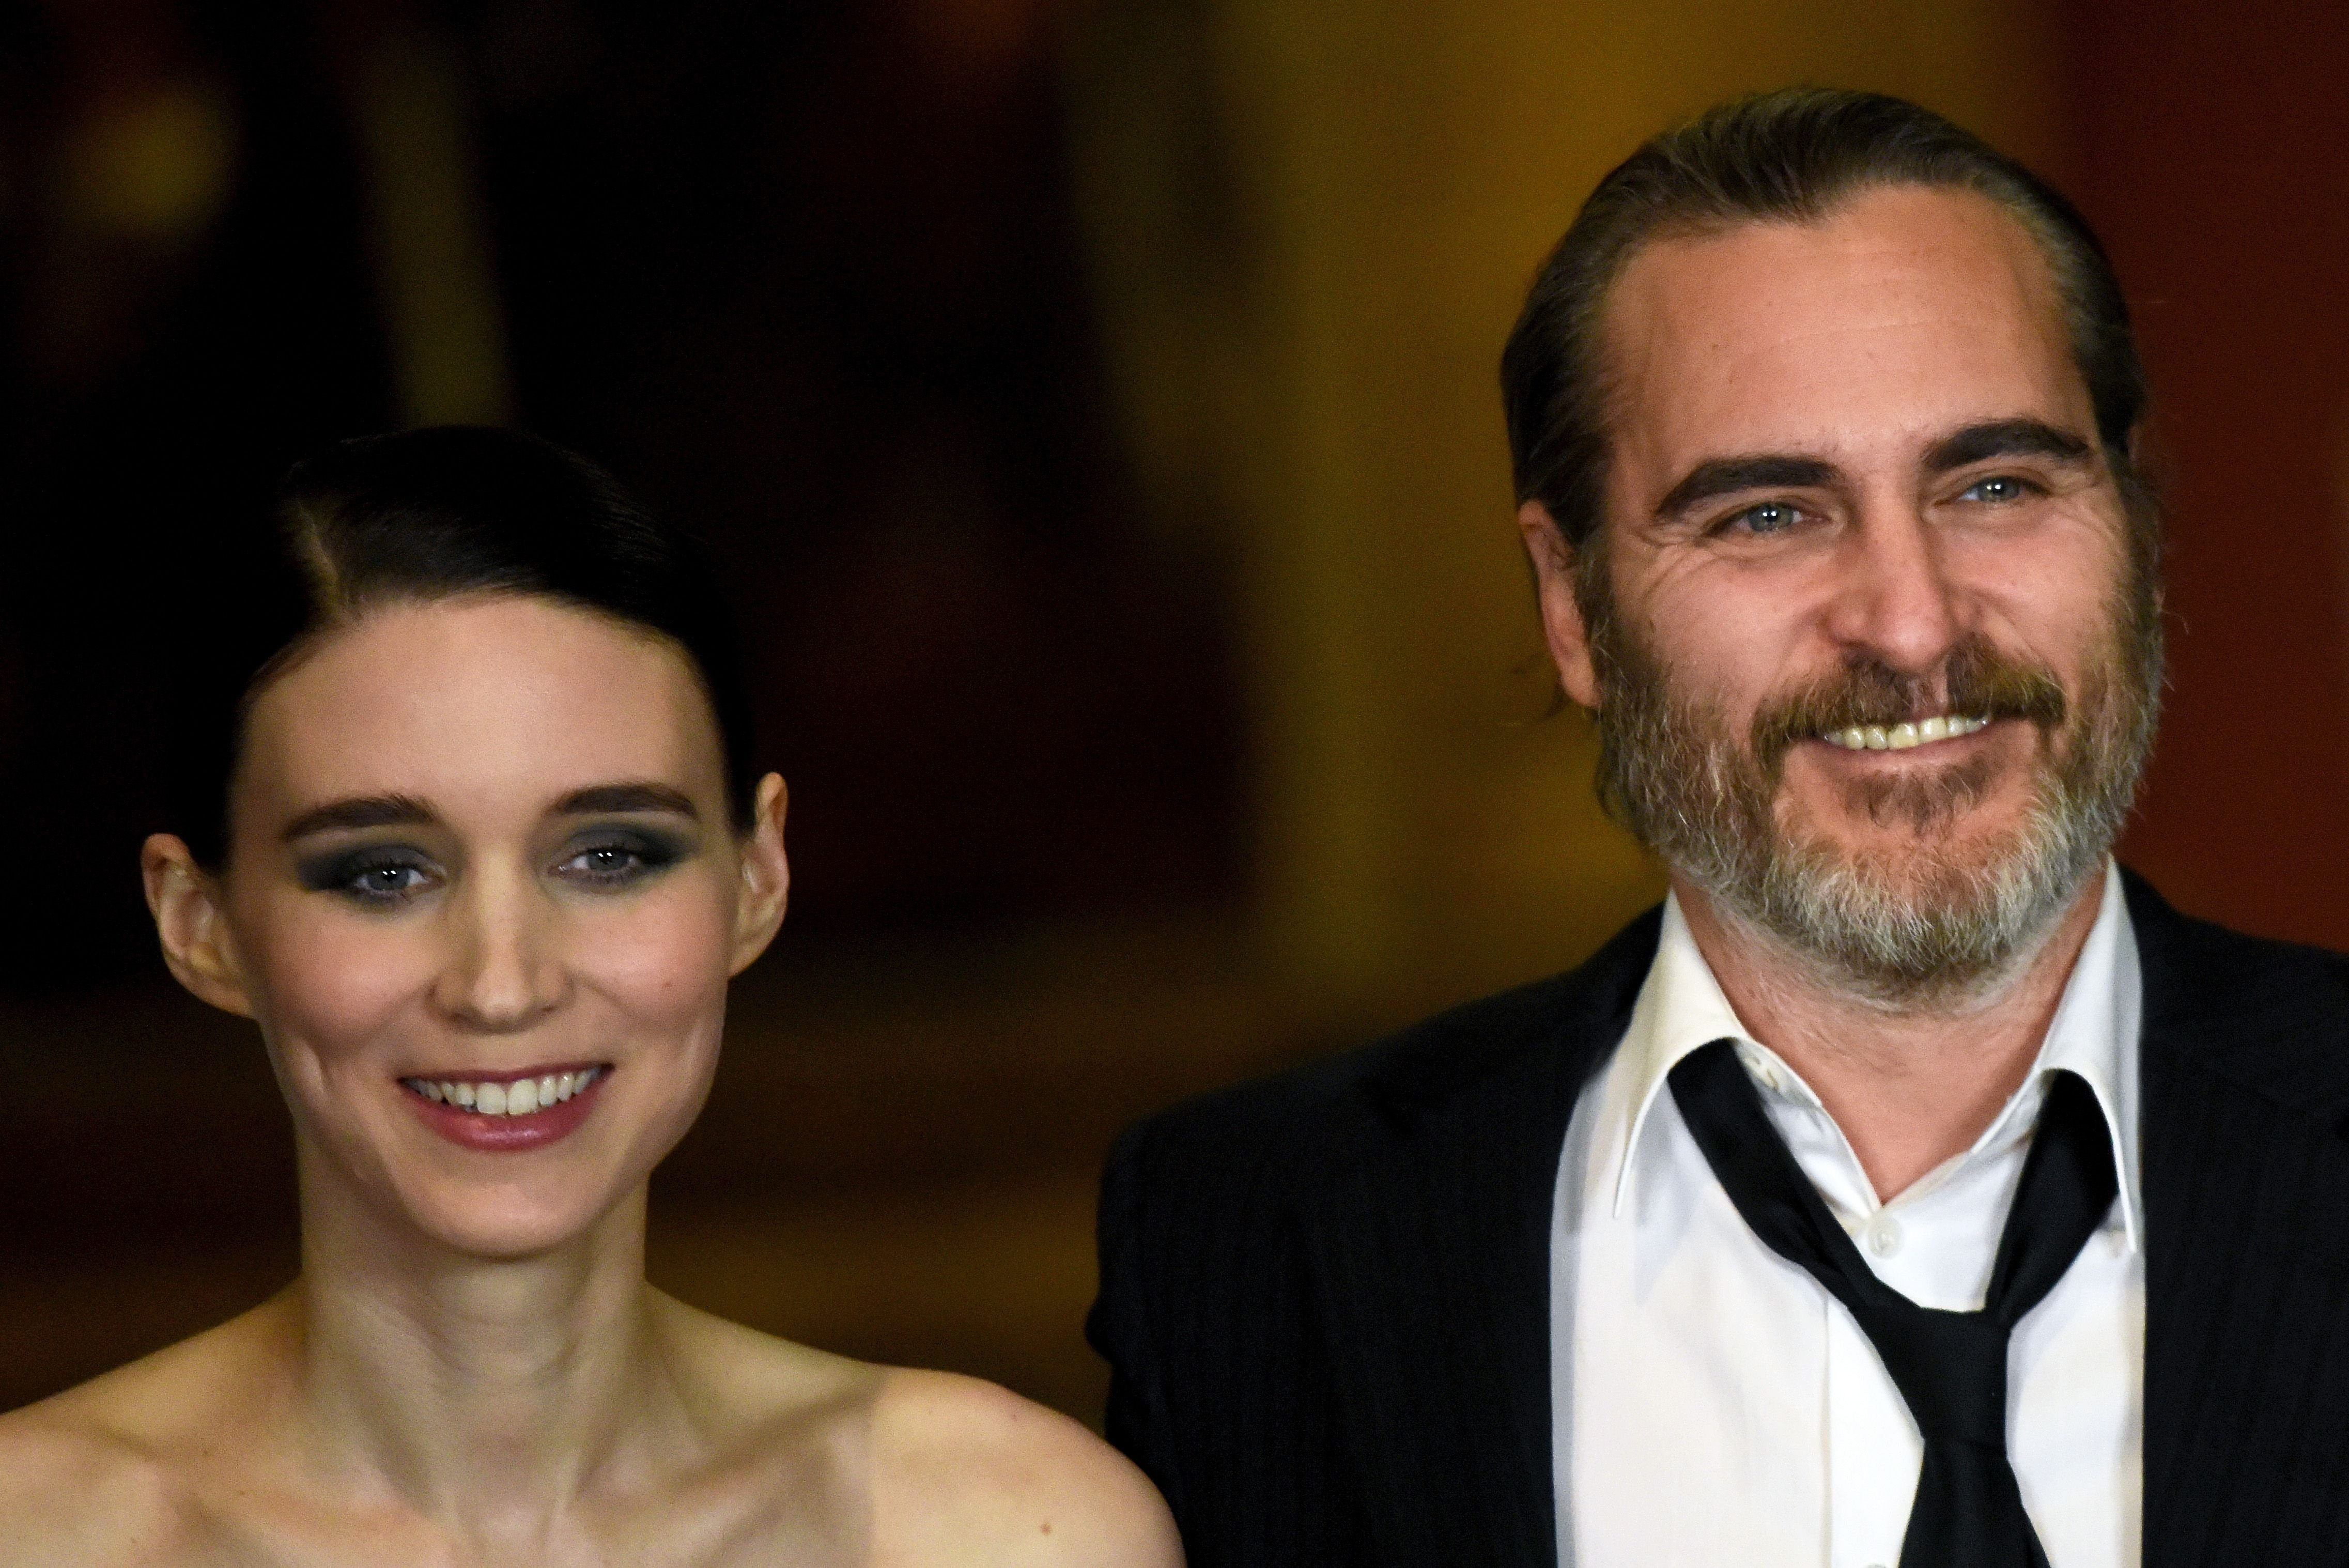 Rooney Mara and Joaquin Phoenix at the 'Mary Magdalene' special screening held at The National Gallery on February 26, 2018 in London, England. | Photo: Getty Images